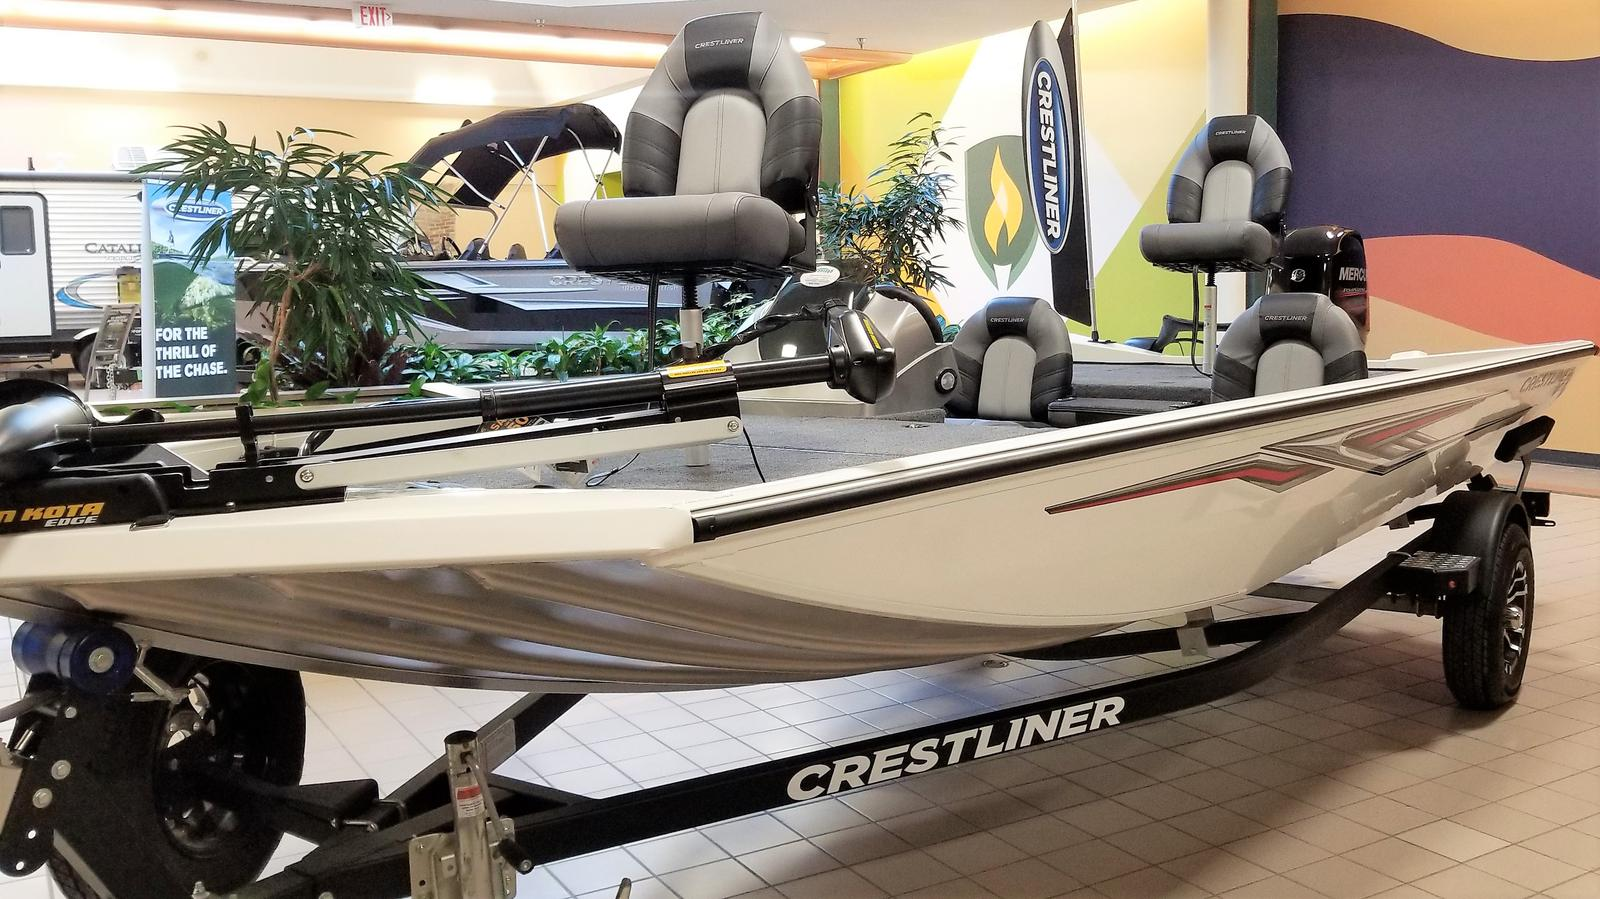 2018 Crestliner Vt 17 Dx For Sale In Mapleton Mn Marine Wiring Up A Boat Switch Panel 20190116 081619